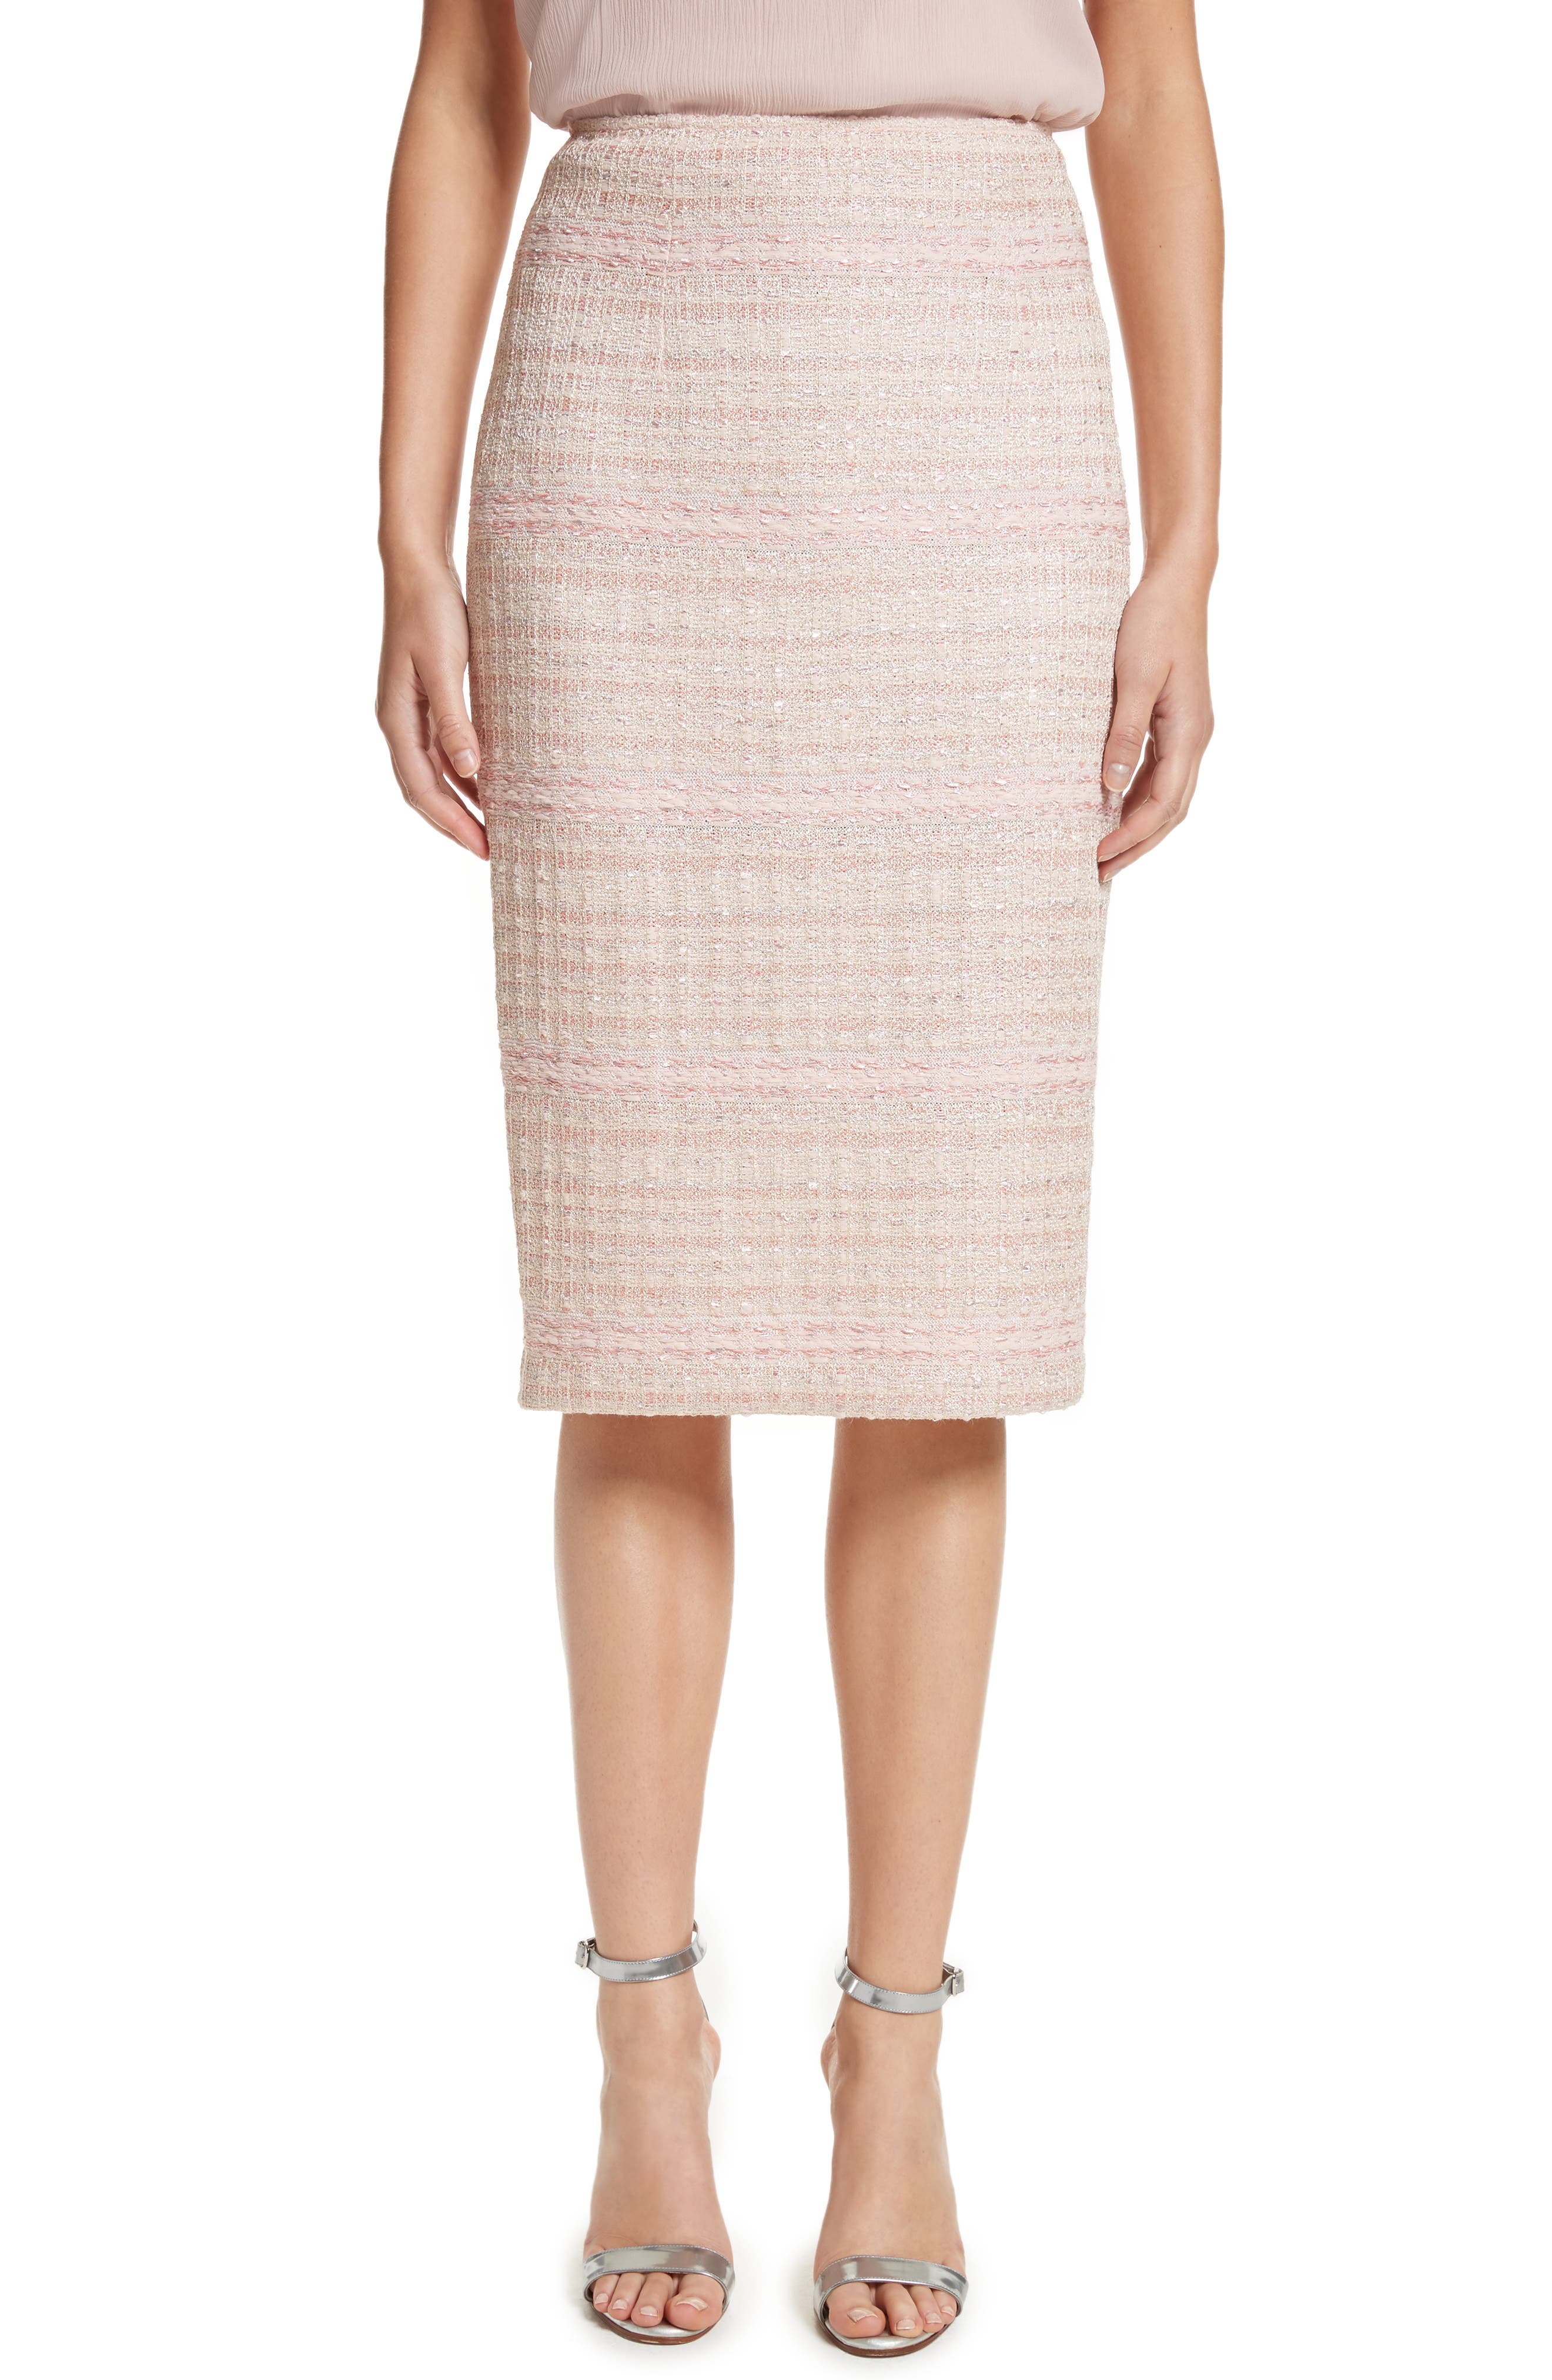 Alternate Image 1 Selected - St. John Collection Guilded Pastel Knit Skirt